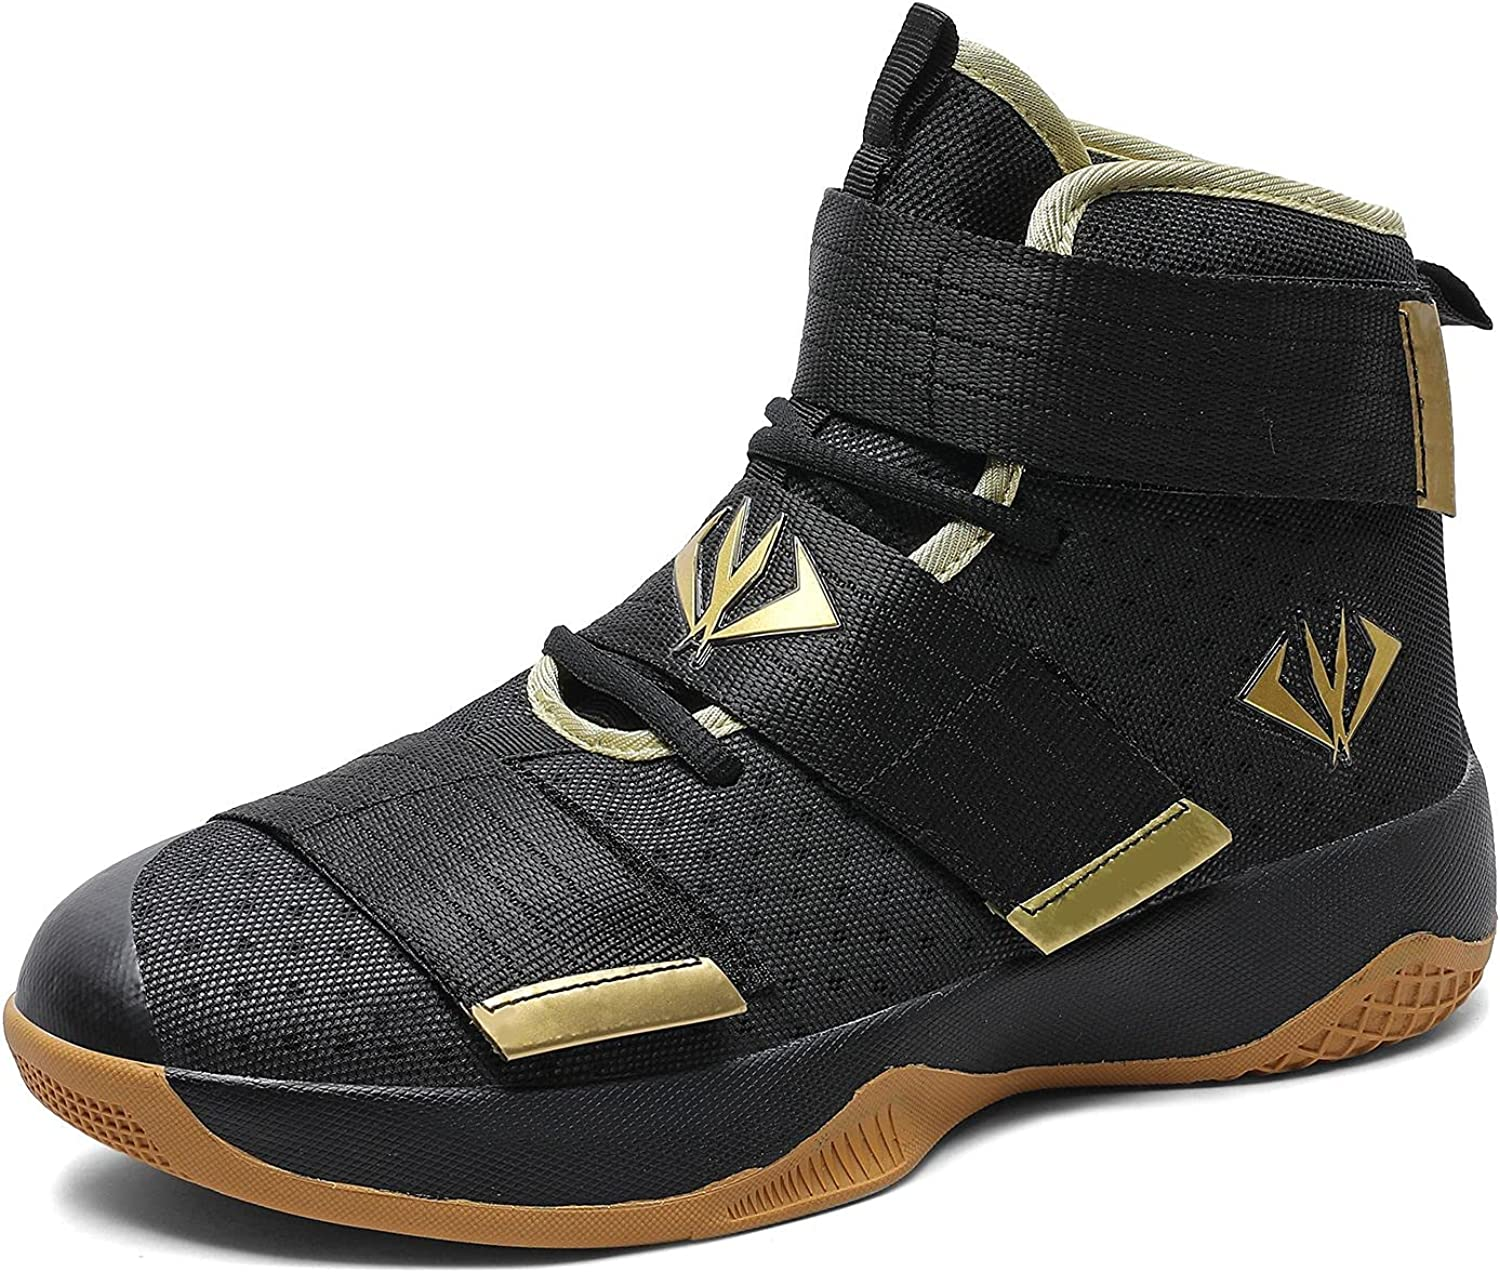 MAUGELY Men's Women's Velcro Breathable Basketball Max 74% OFF Student Shoes Tucson Mall